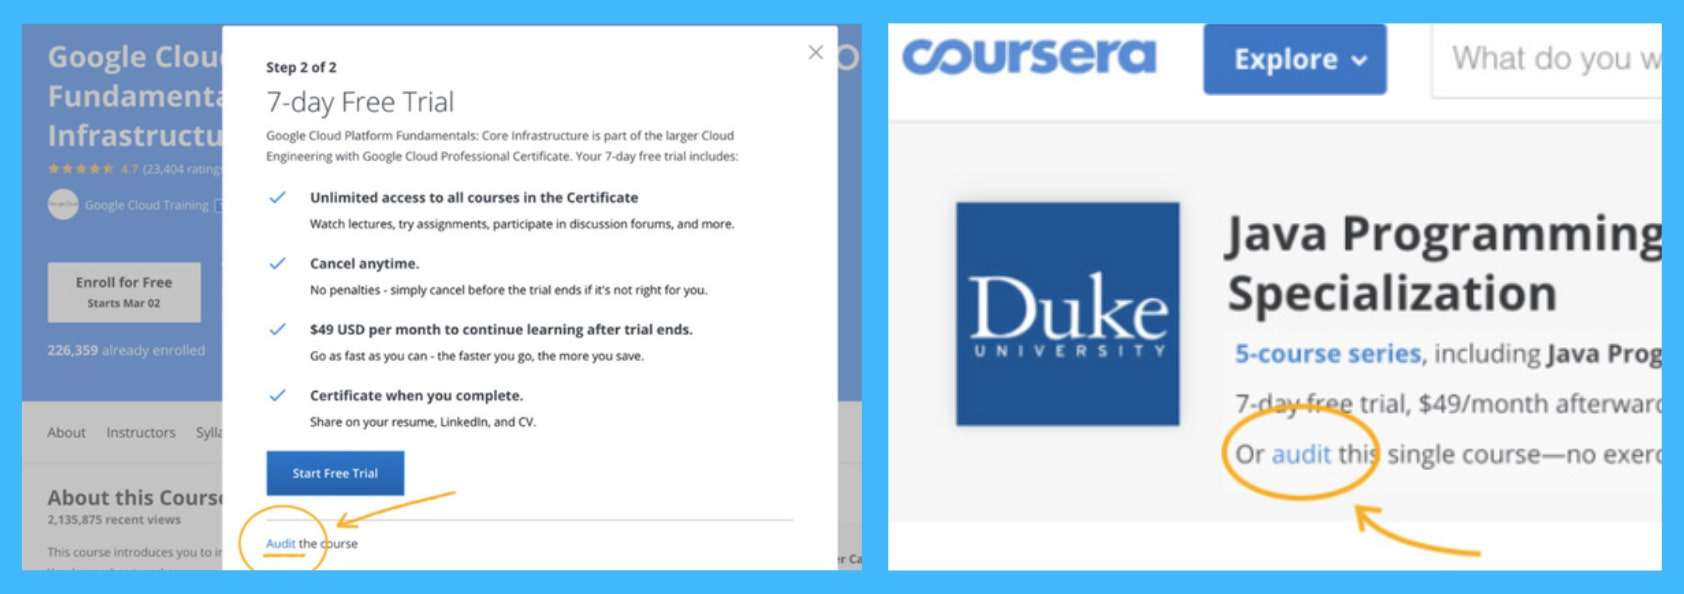 audit this course coursera